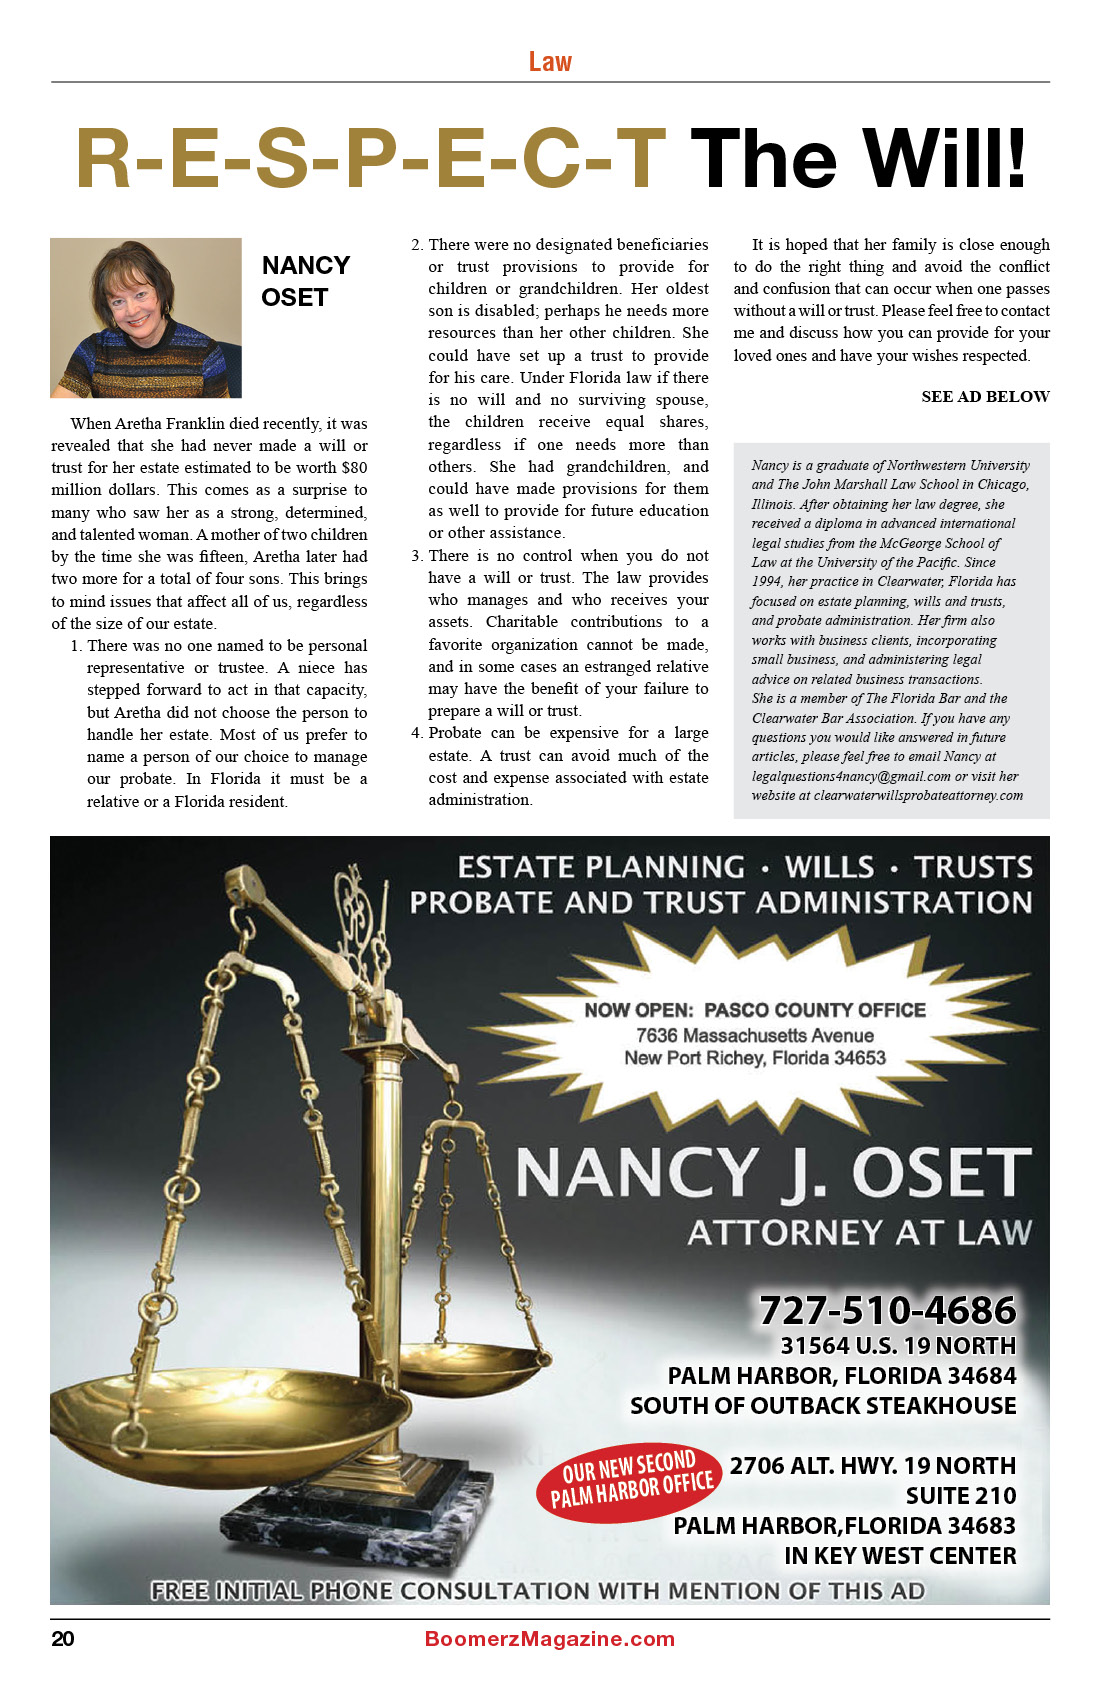 2018 October Boomerz Magazine Page 20 Nancy Oset Respect the Will Article